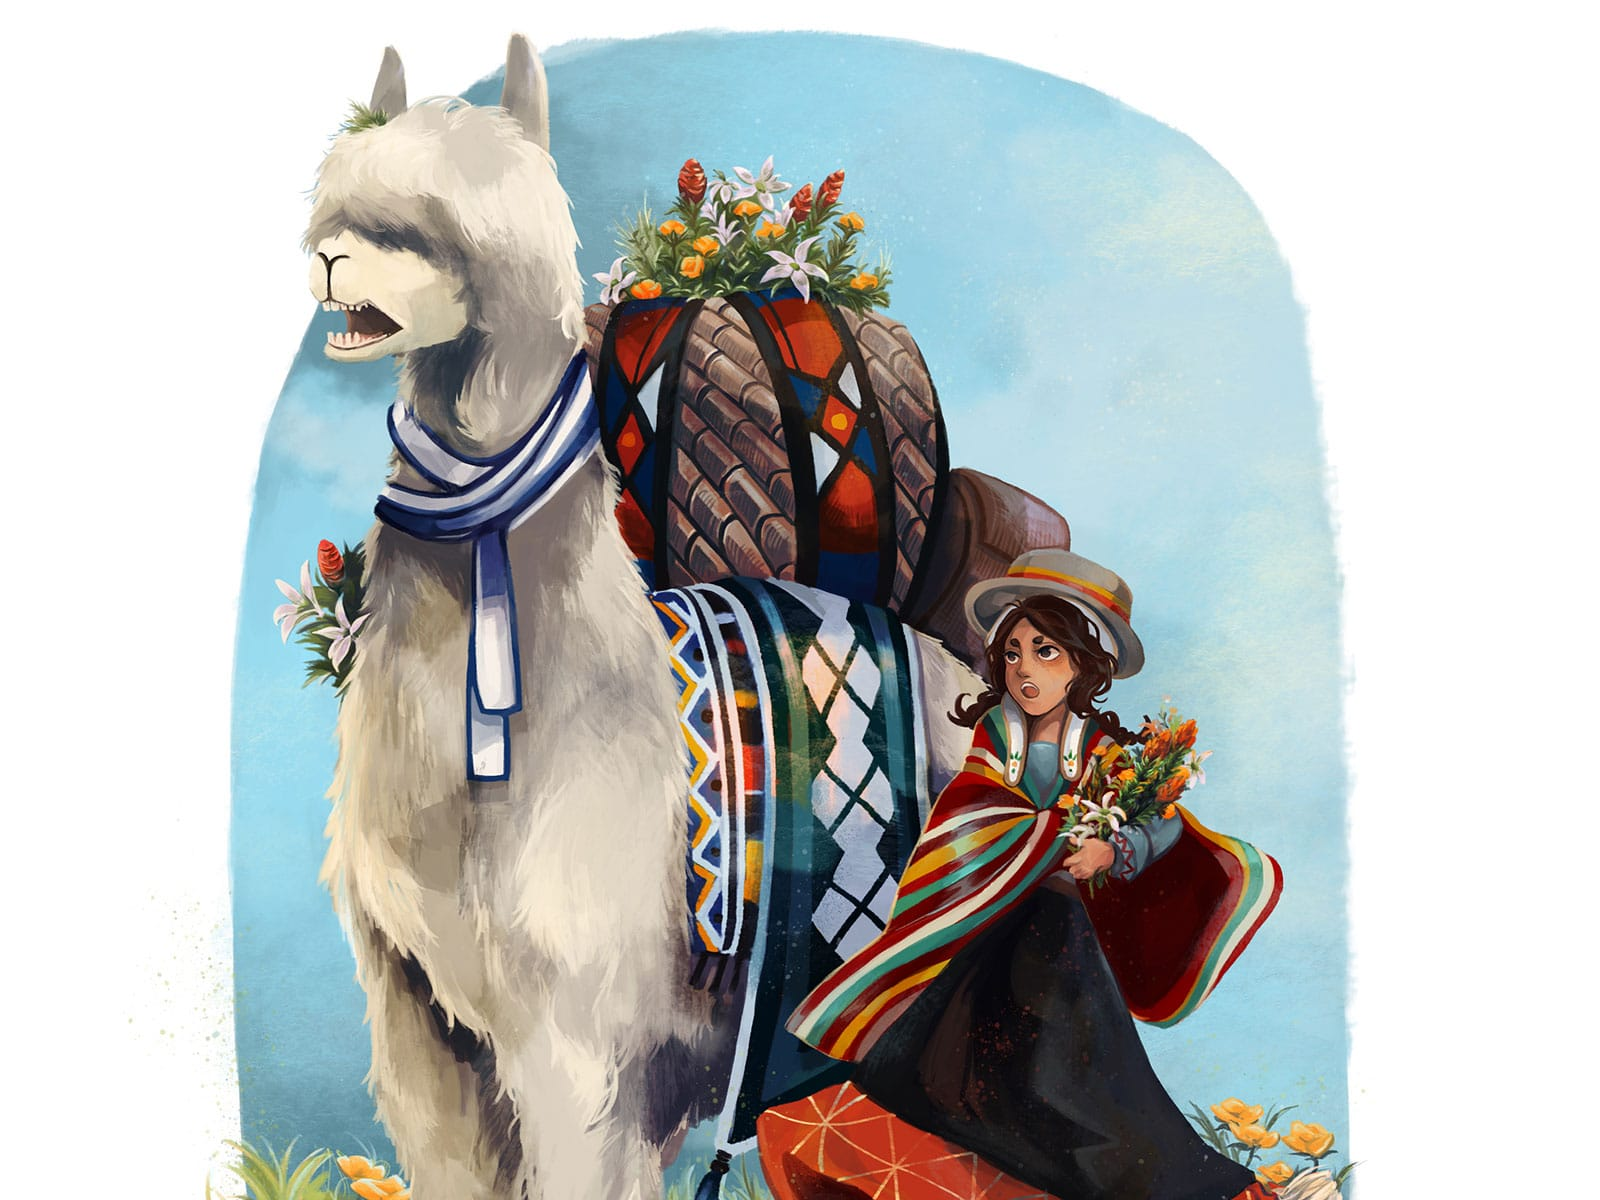 An open-mouthed girl and her llama, both in traditional dress